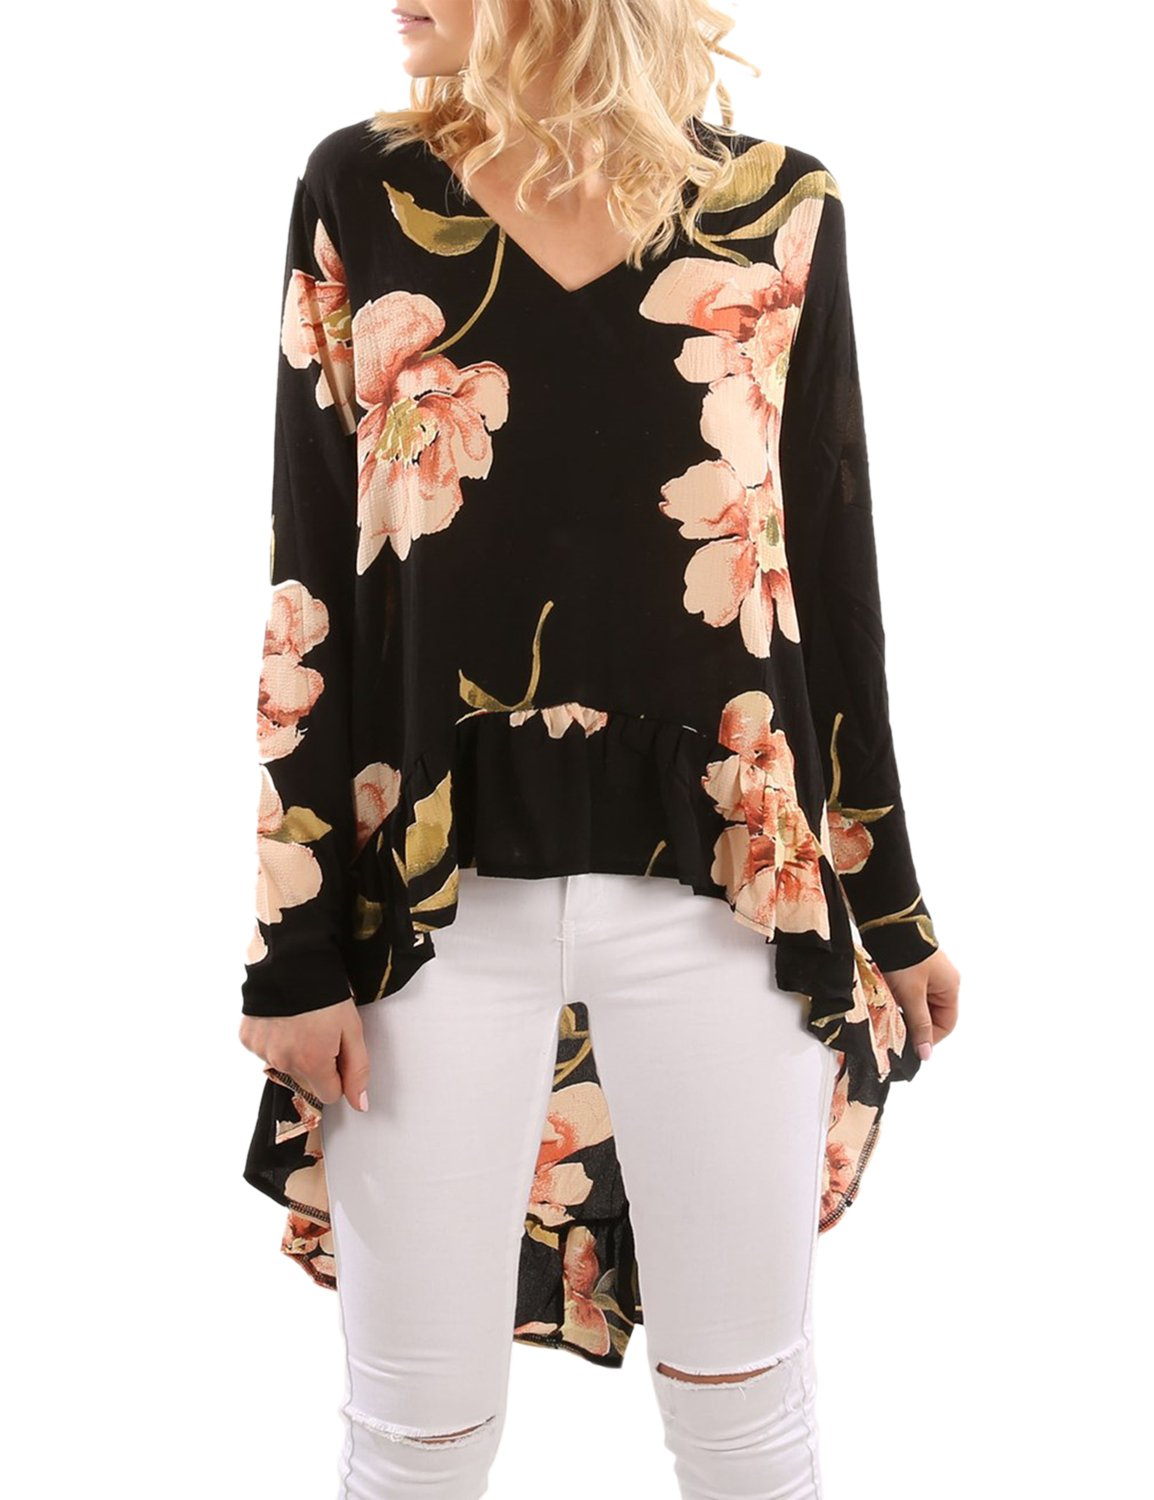 Blooming Jelly Women's Oversized Long Sleeve V Neck Shirts Frilled Floral Blouse Hi Low Asymmetrical Flattering Tops(M, Black)